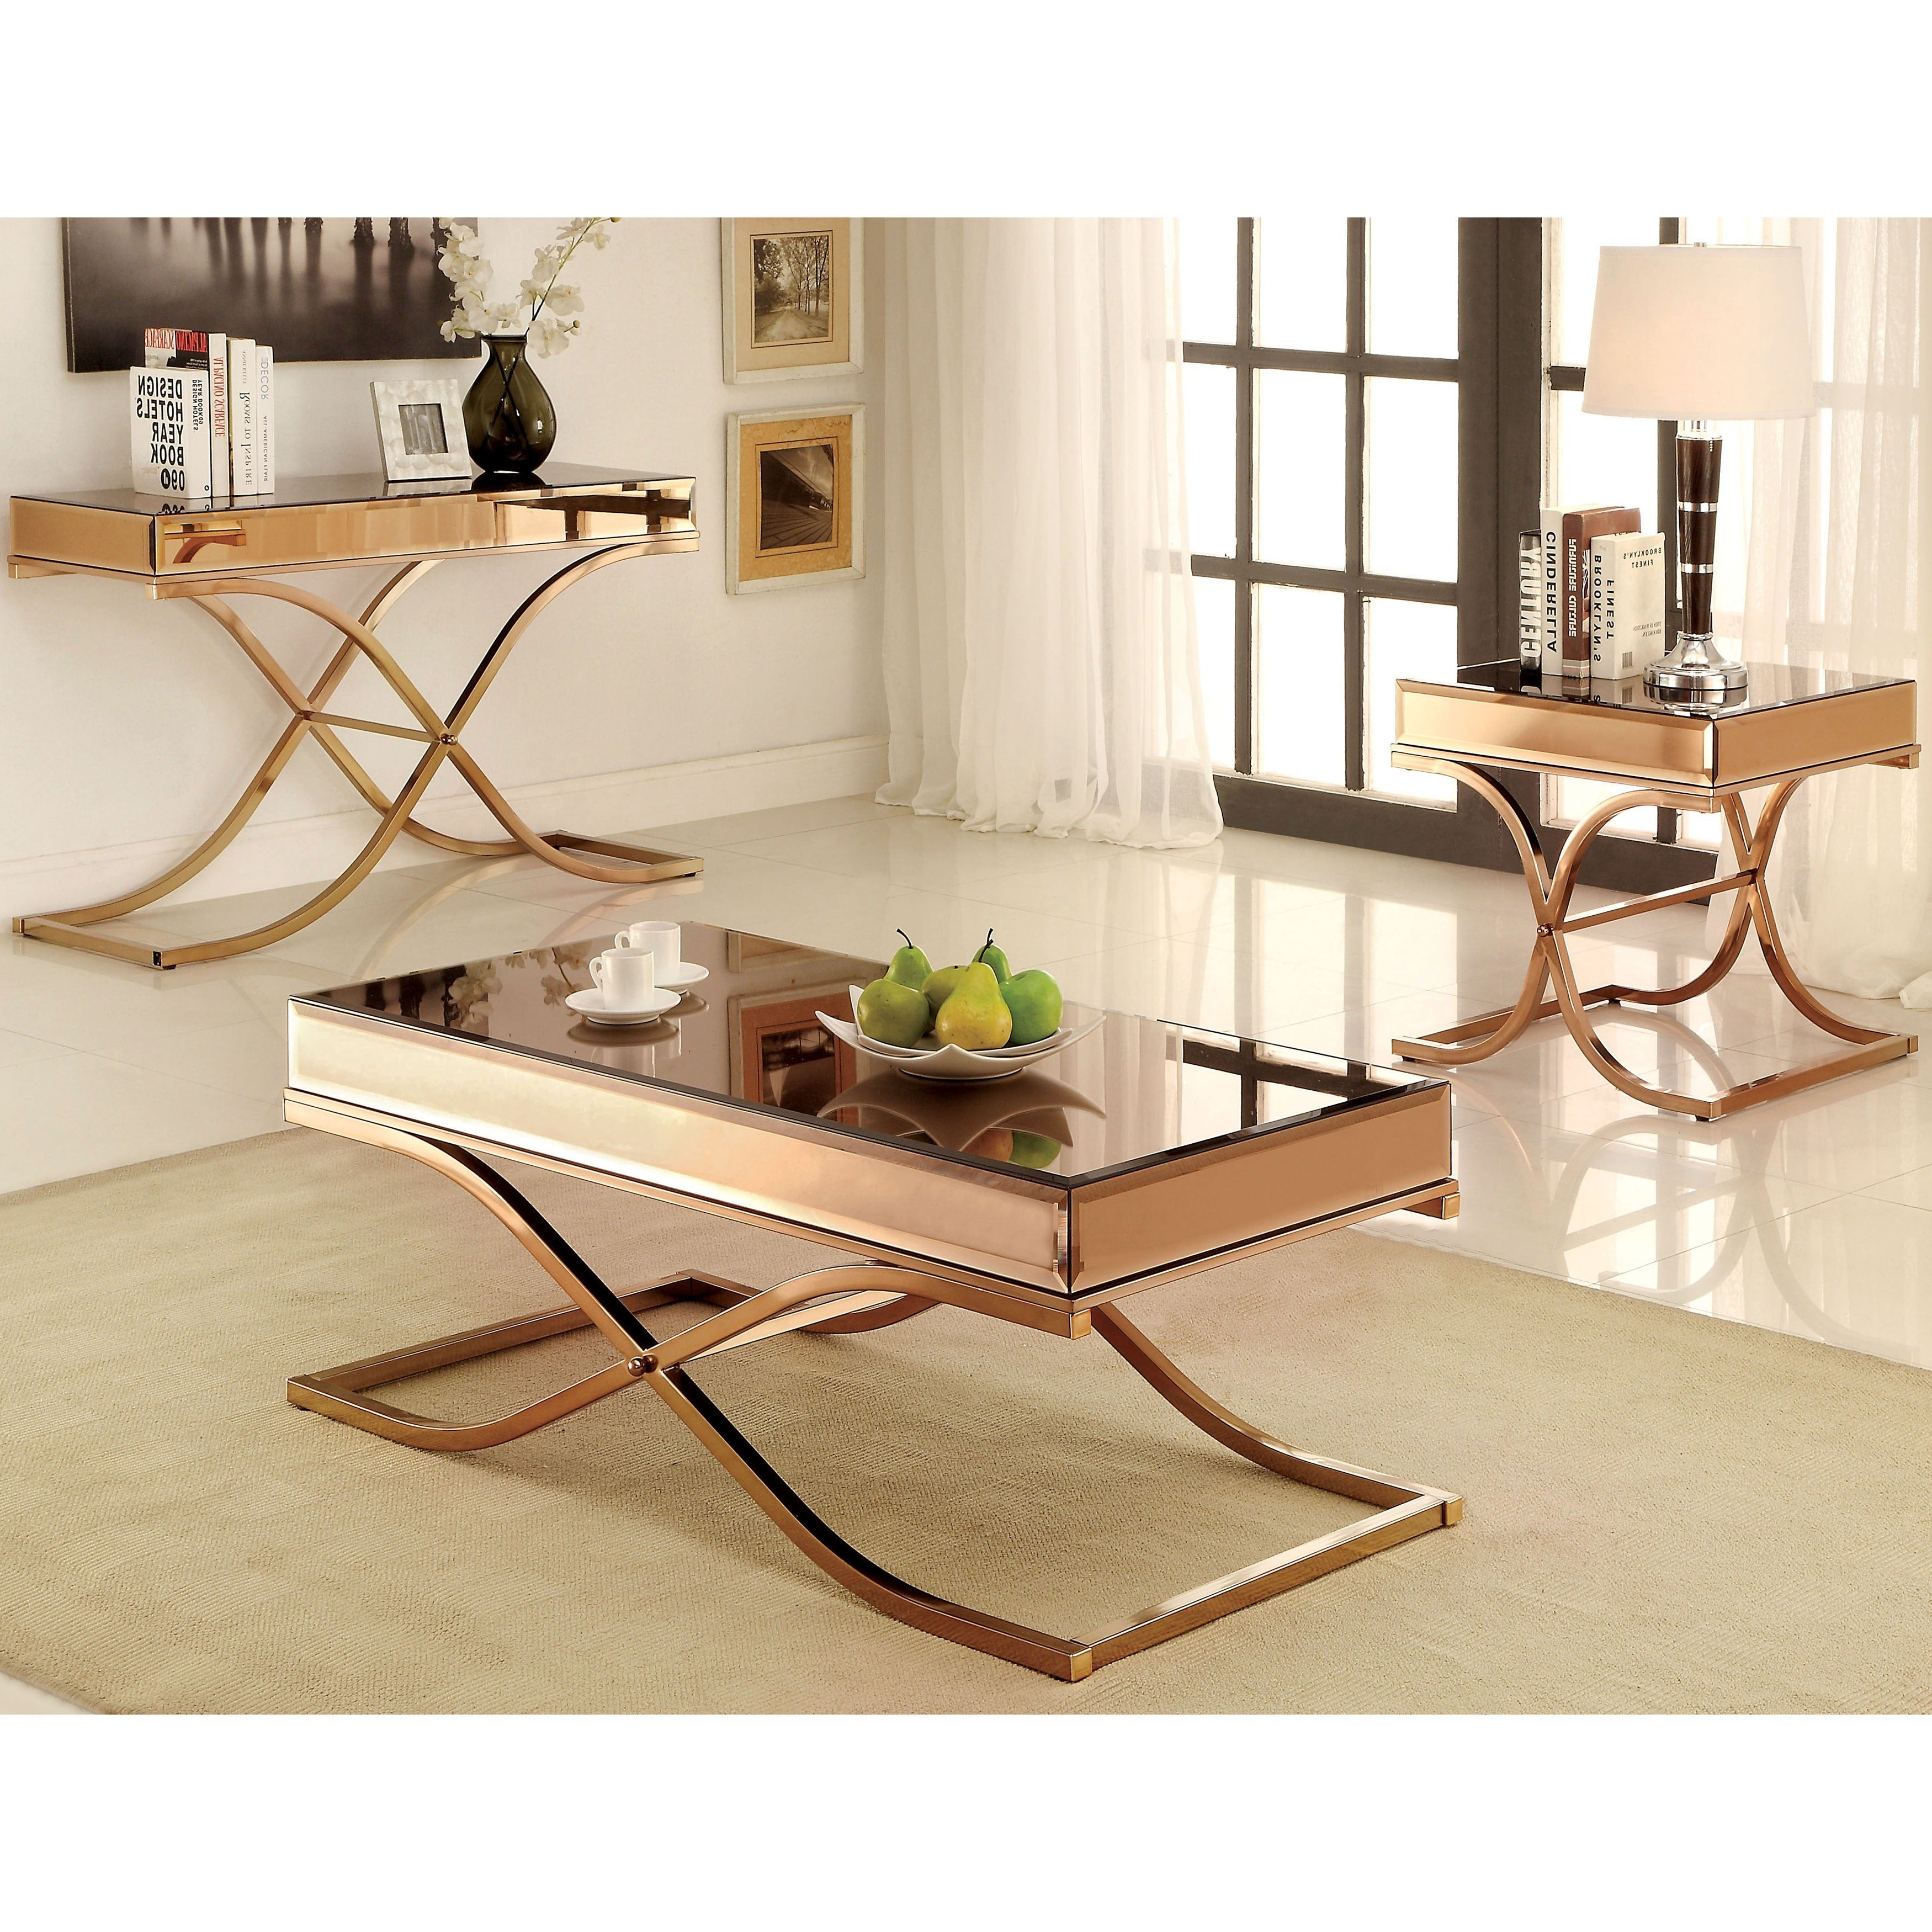 Current Furniture Of America Orelia Brass Luxury Copper Metal Coffee Tables Intended For Furniture Of America Orelia Brass Luxury Copper Metal Coffee Table (View 2 of 20)